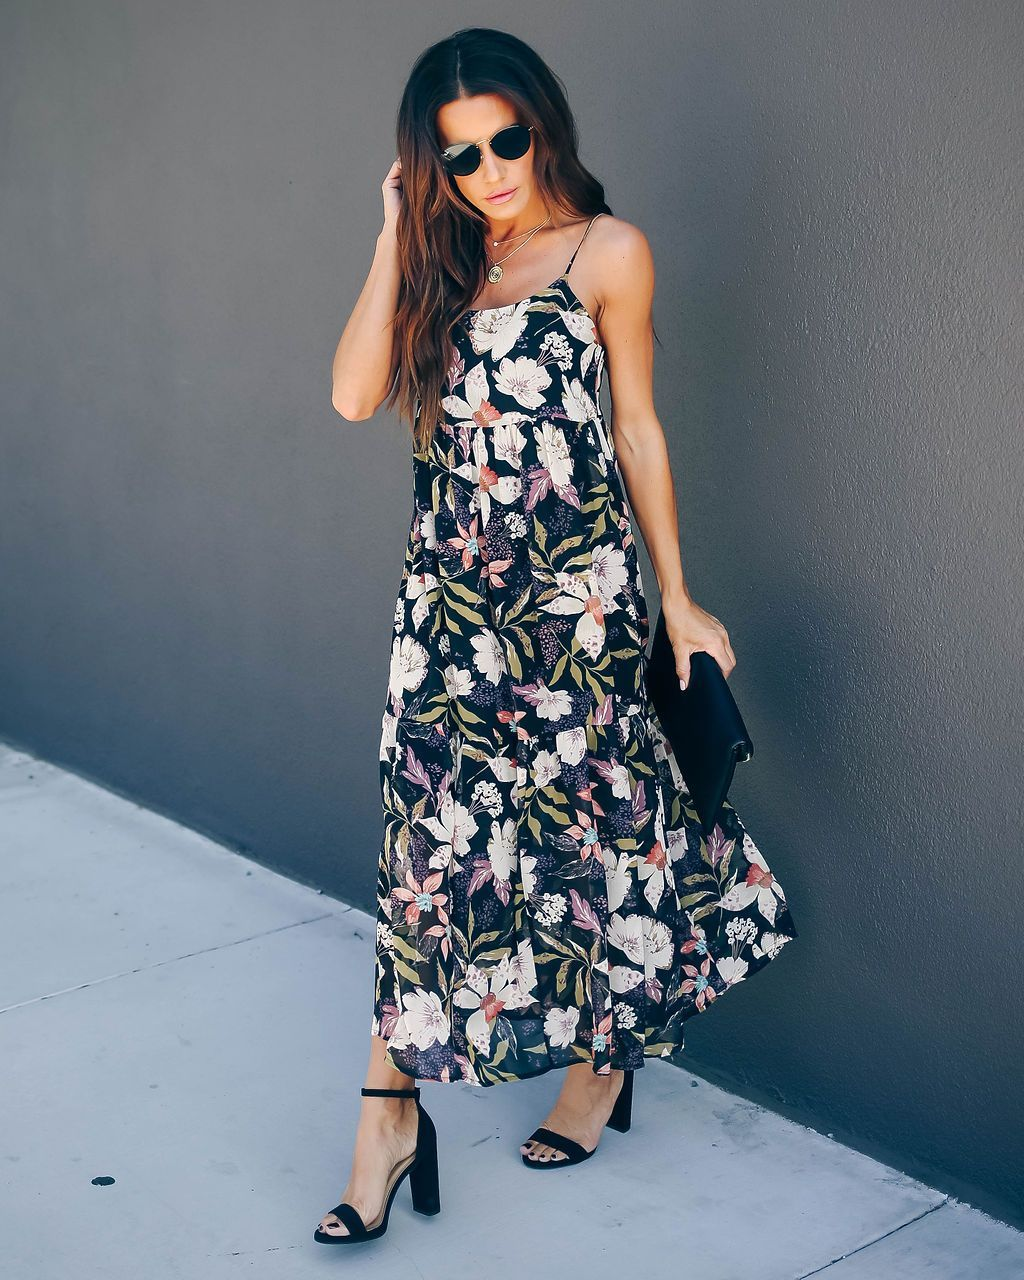 Nothing Holding Me Back Floral Maxi Dress Final Sale Maxi Dress Floral Maxi Dress Dresses [ 1280 x 1024 Pixel ]